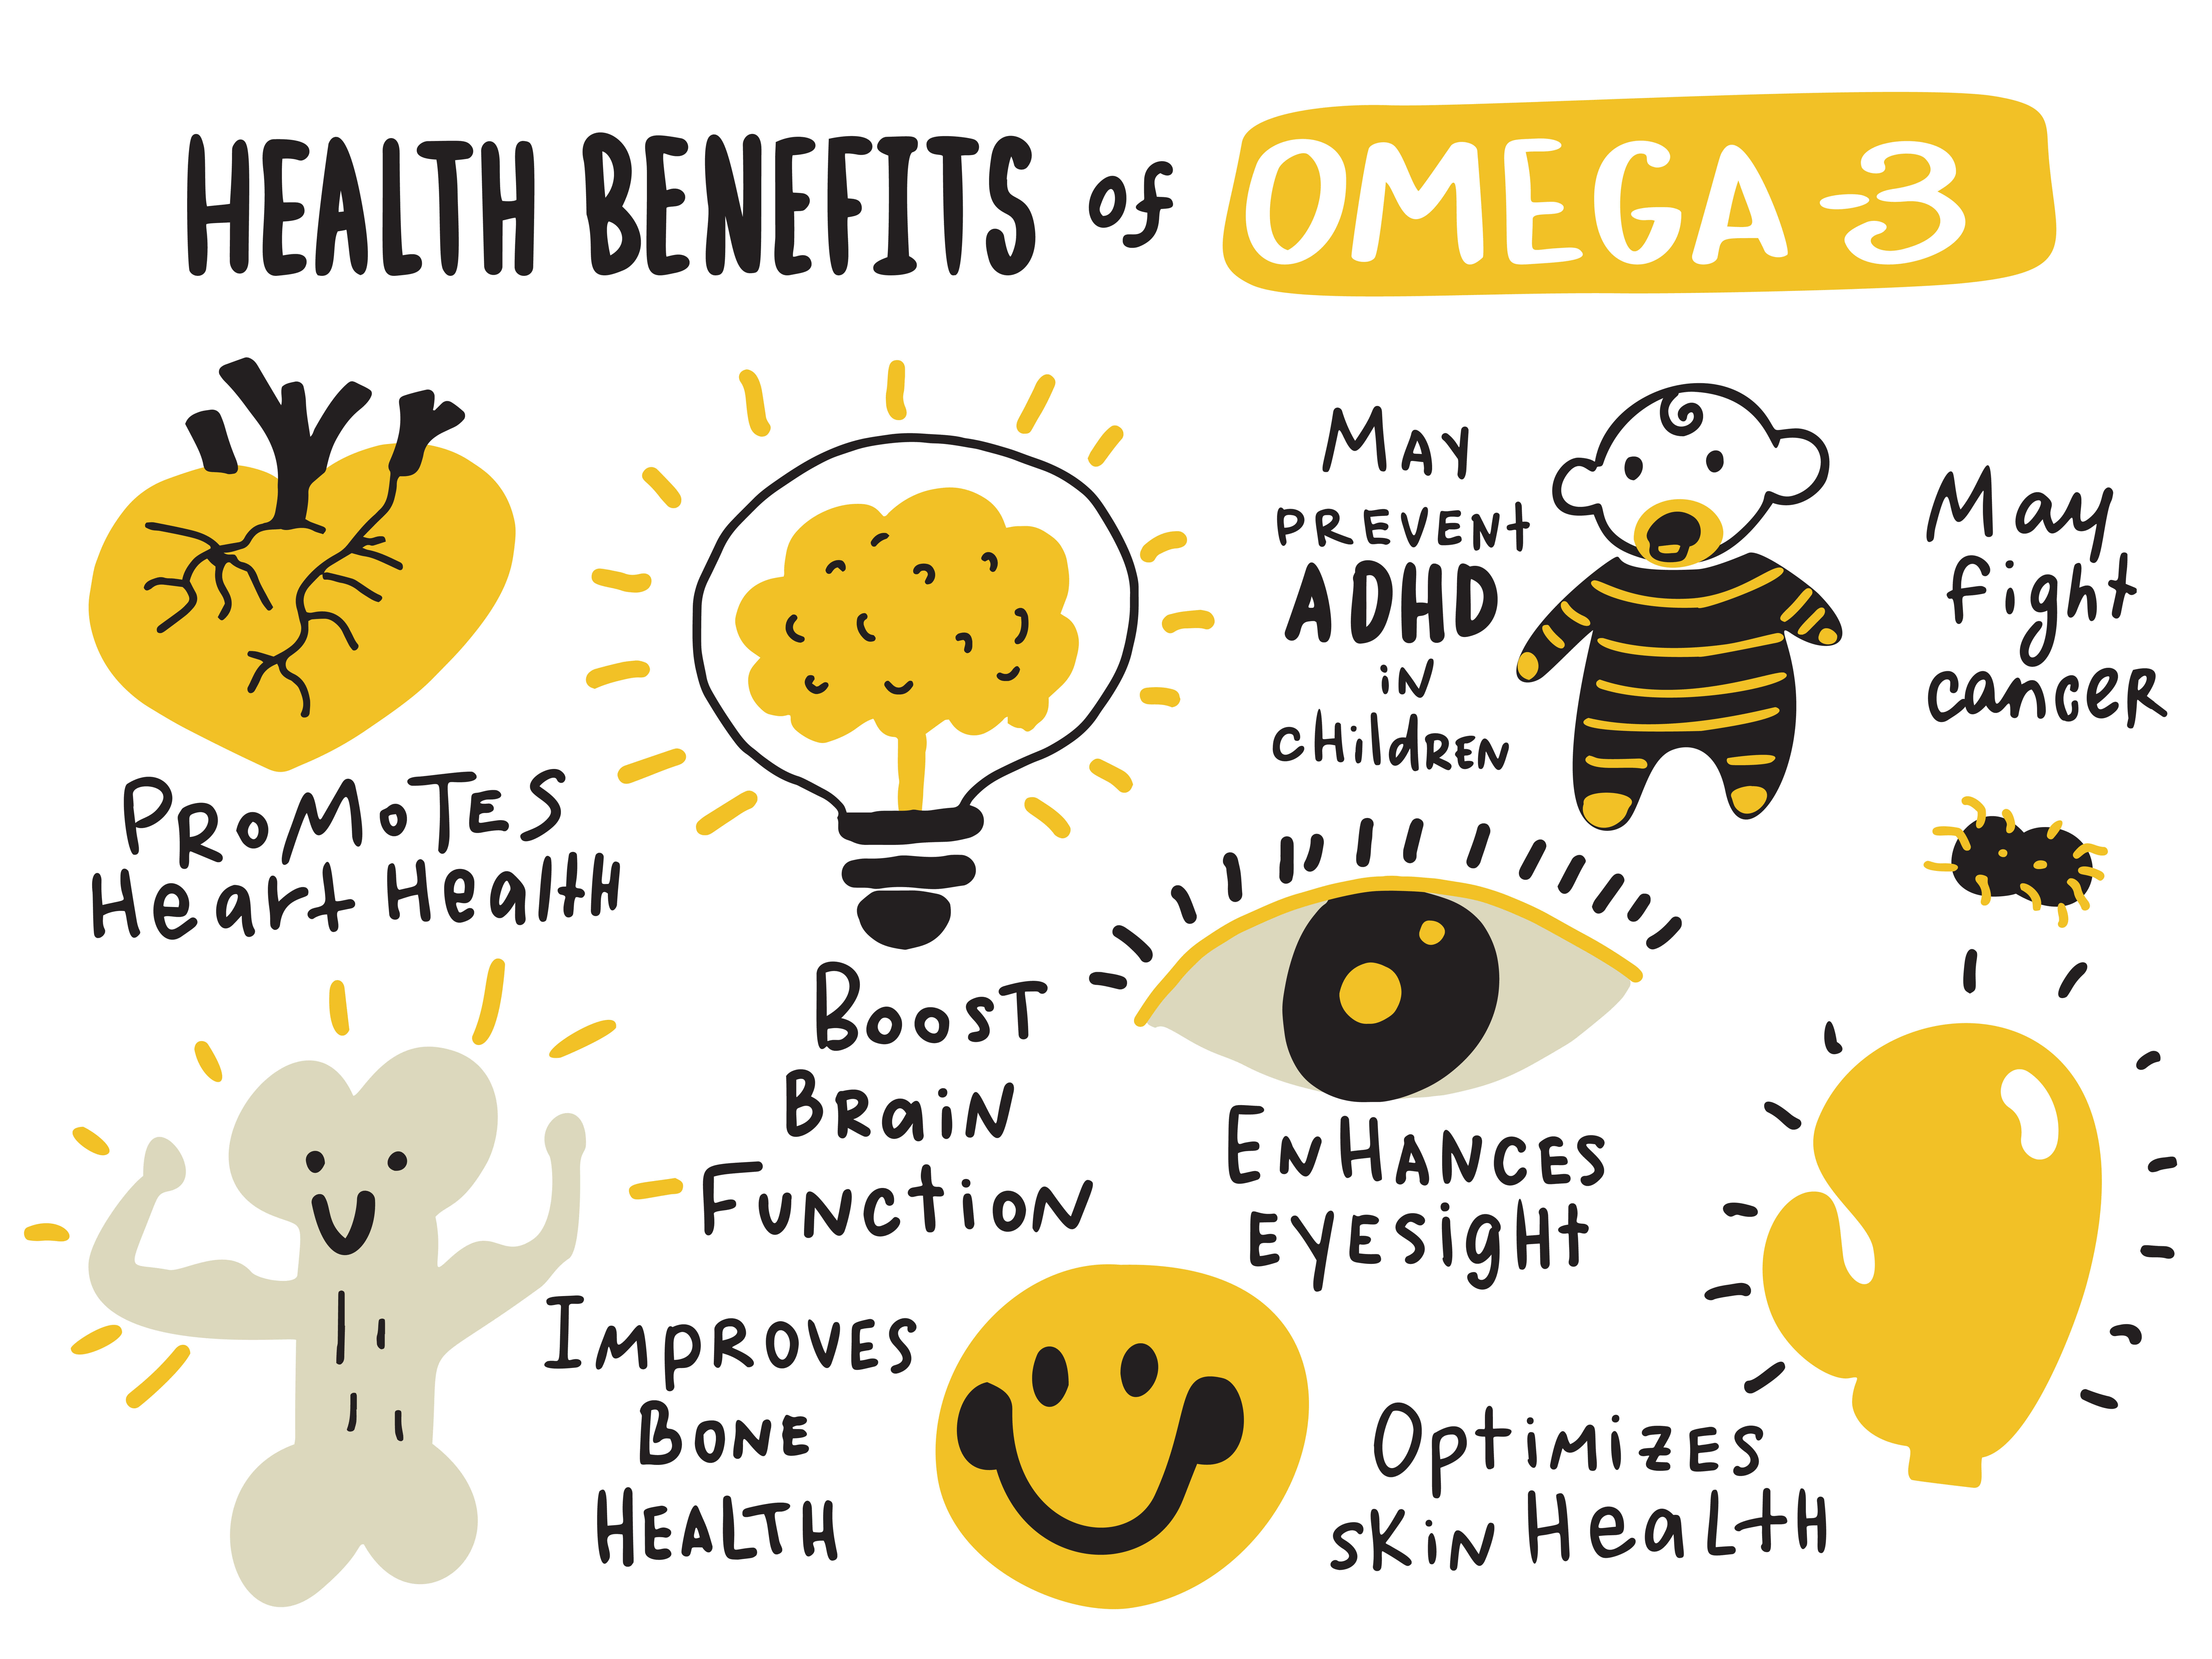 Infographic on the health benefits of omega-3